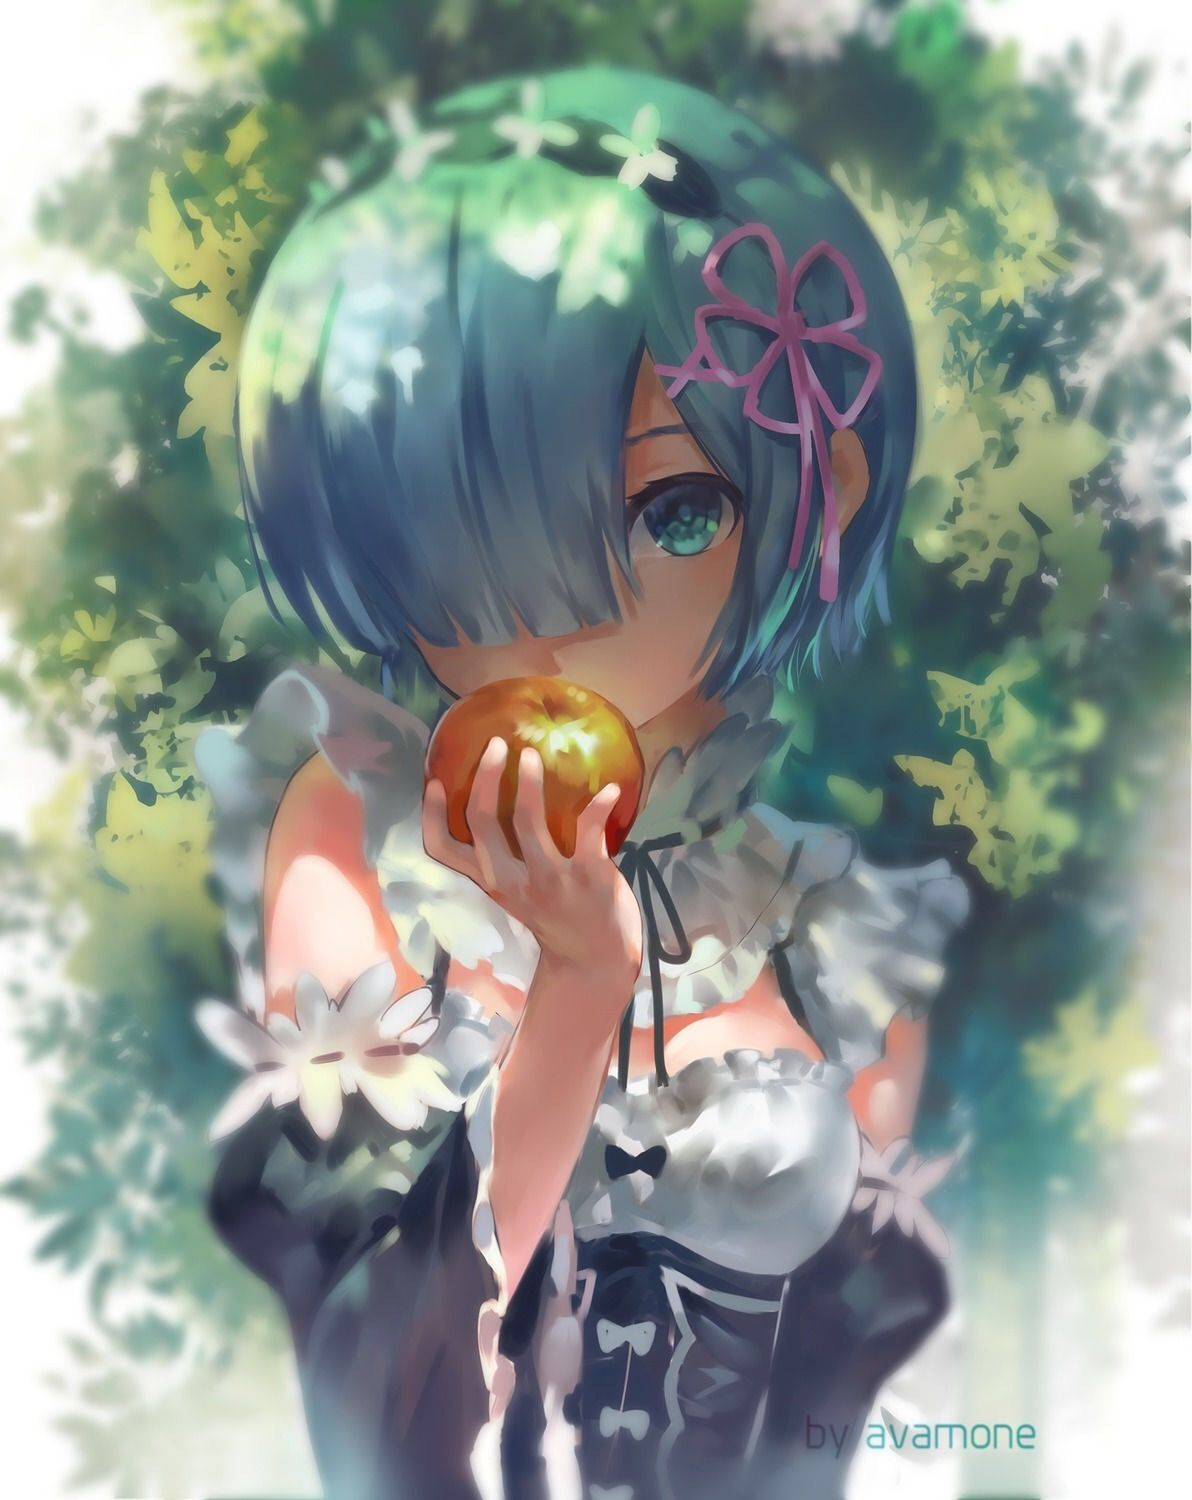 Pin by 알 티 on rem uc pinterest anime and animation